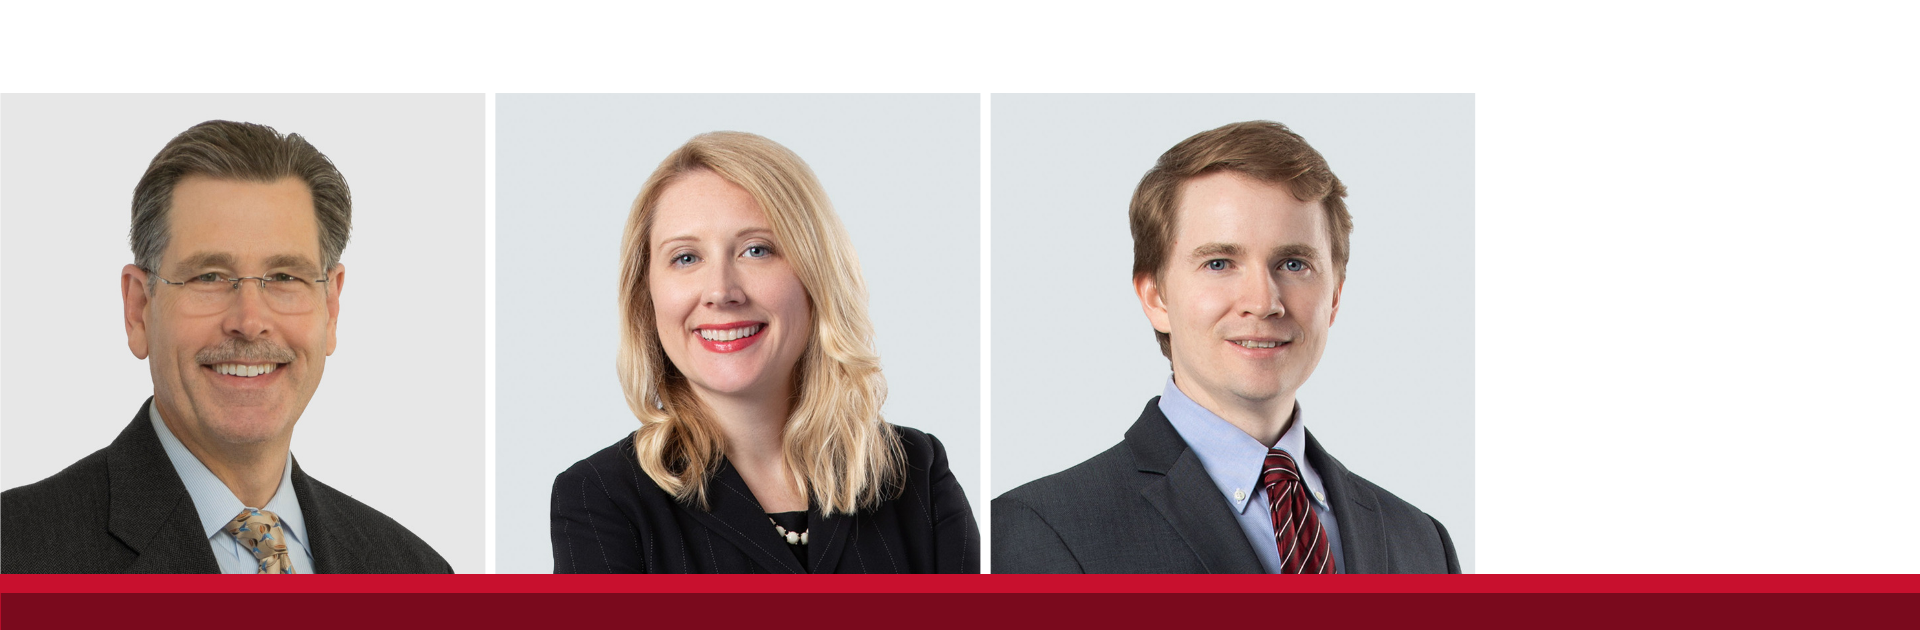 Three Coats Rose Lawyers Included in the 2019 Chambers USA Legal Guide by Chambers & Partners